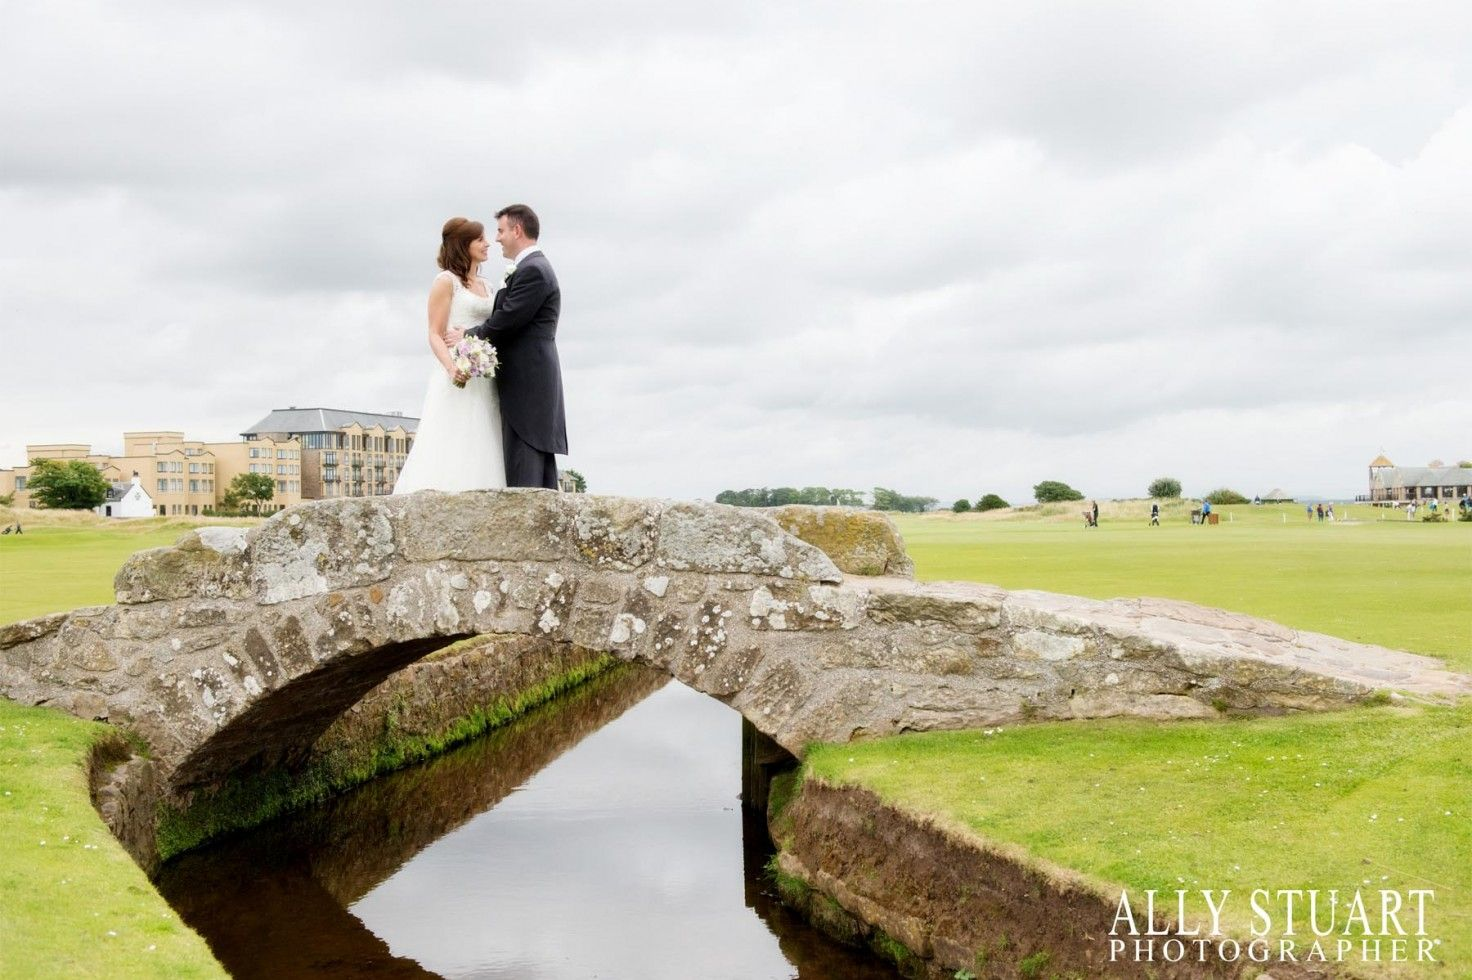 Ally Stuart Wedding Photography Professional Photographers Dundee Angus Inverness Aberdeen Perthshire St Andrews Fife